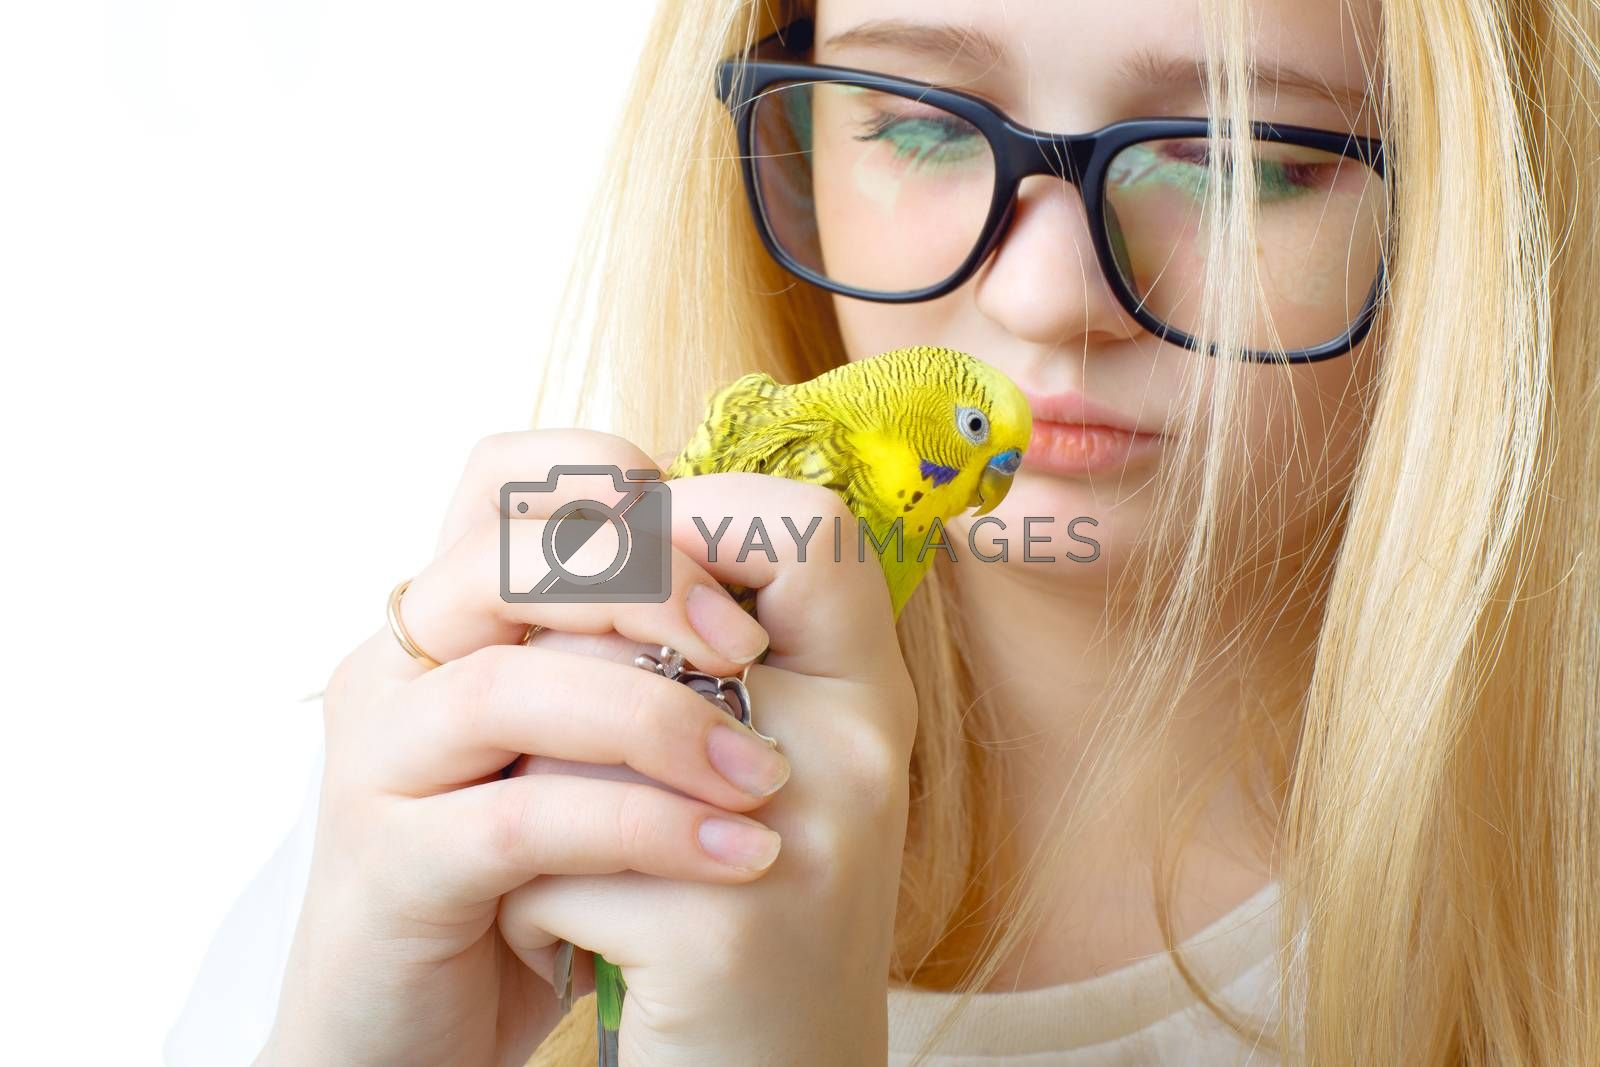 A girl with glasses and a parrot